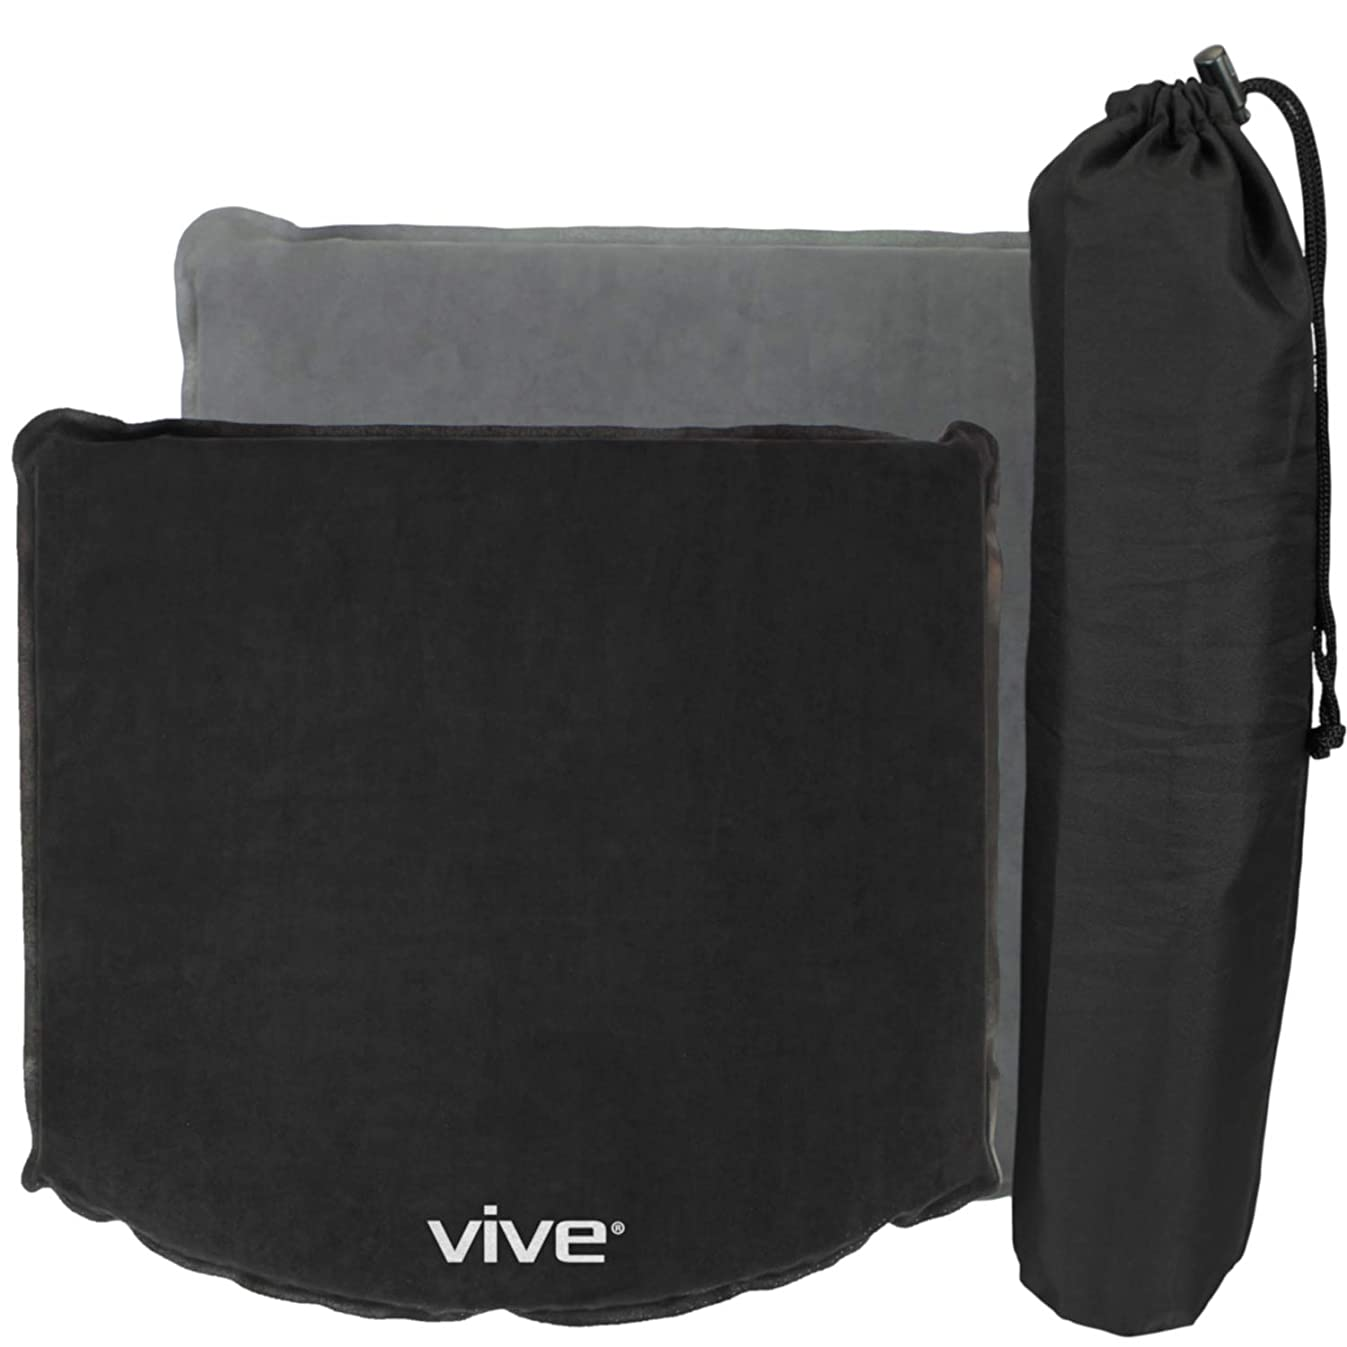 Vive Inflatable Cushion - Office Chair & Wheelchair Air Pad for Coccyx, Tailbone, Sciatica, Cars, Stadium Bleacher Seats, Travel, Airplanes & Boats - Easy to Self Inflate/Deflate & Transport